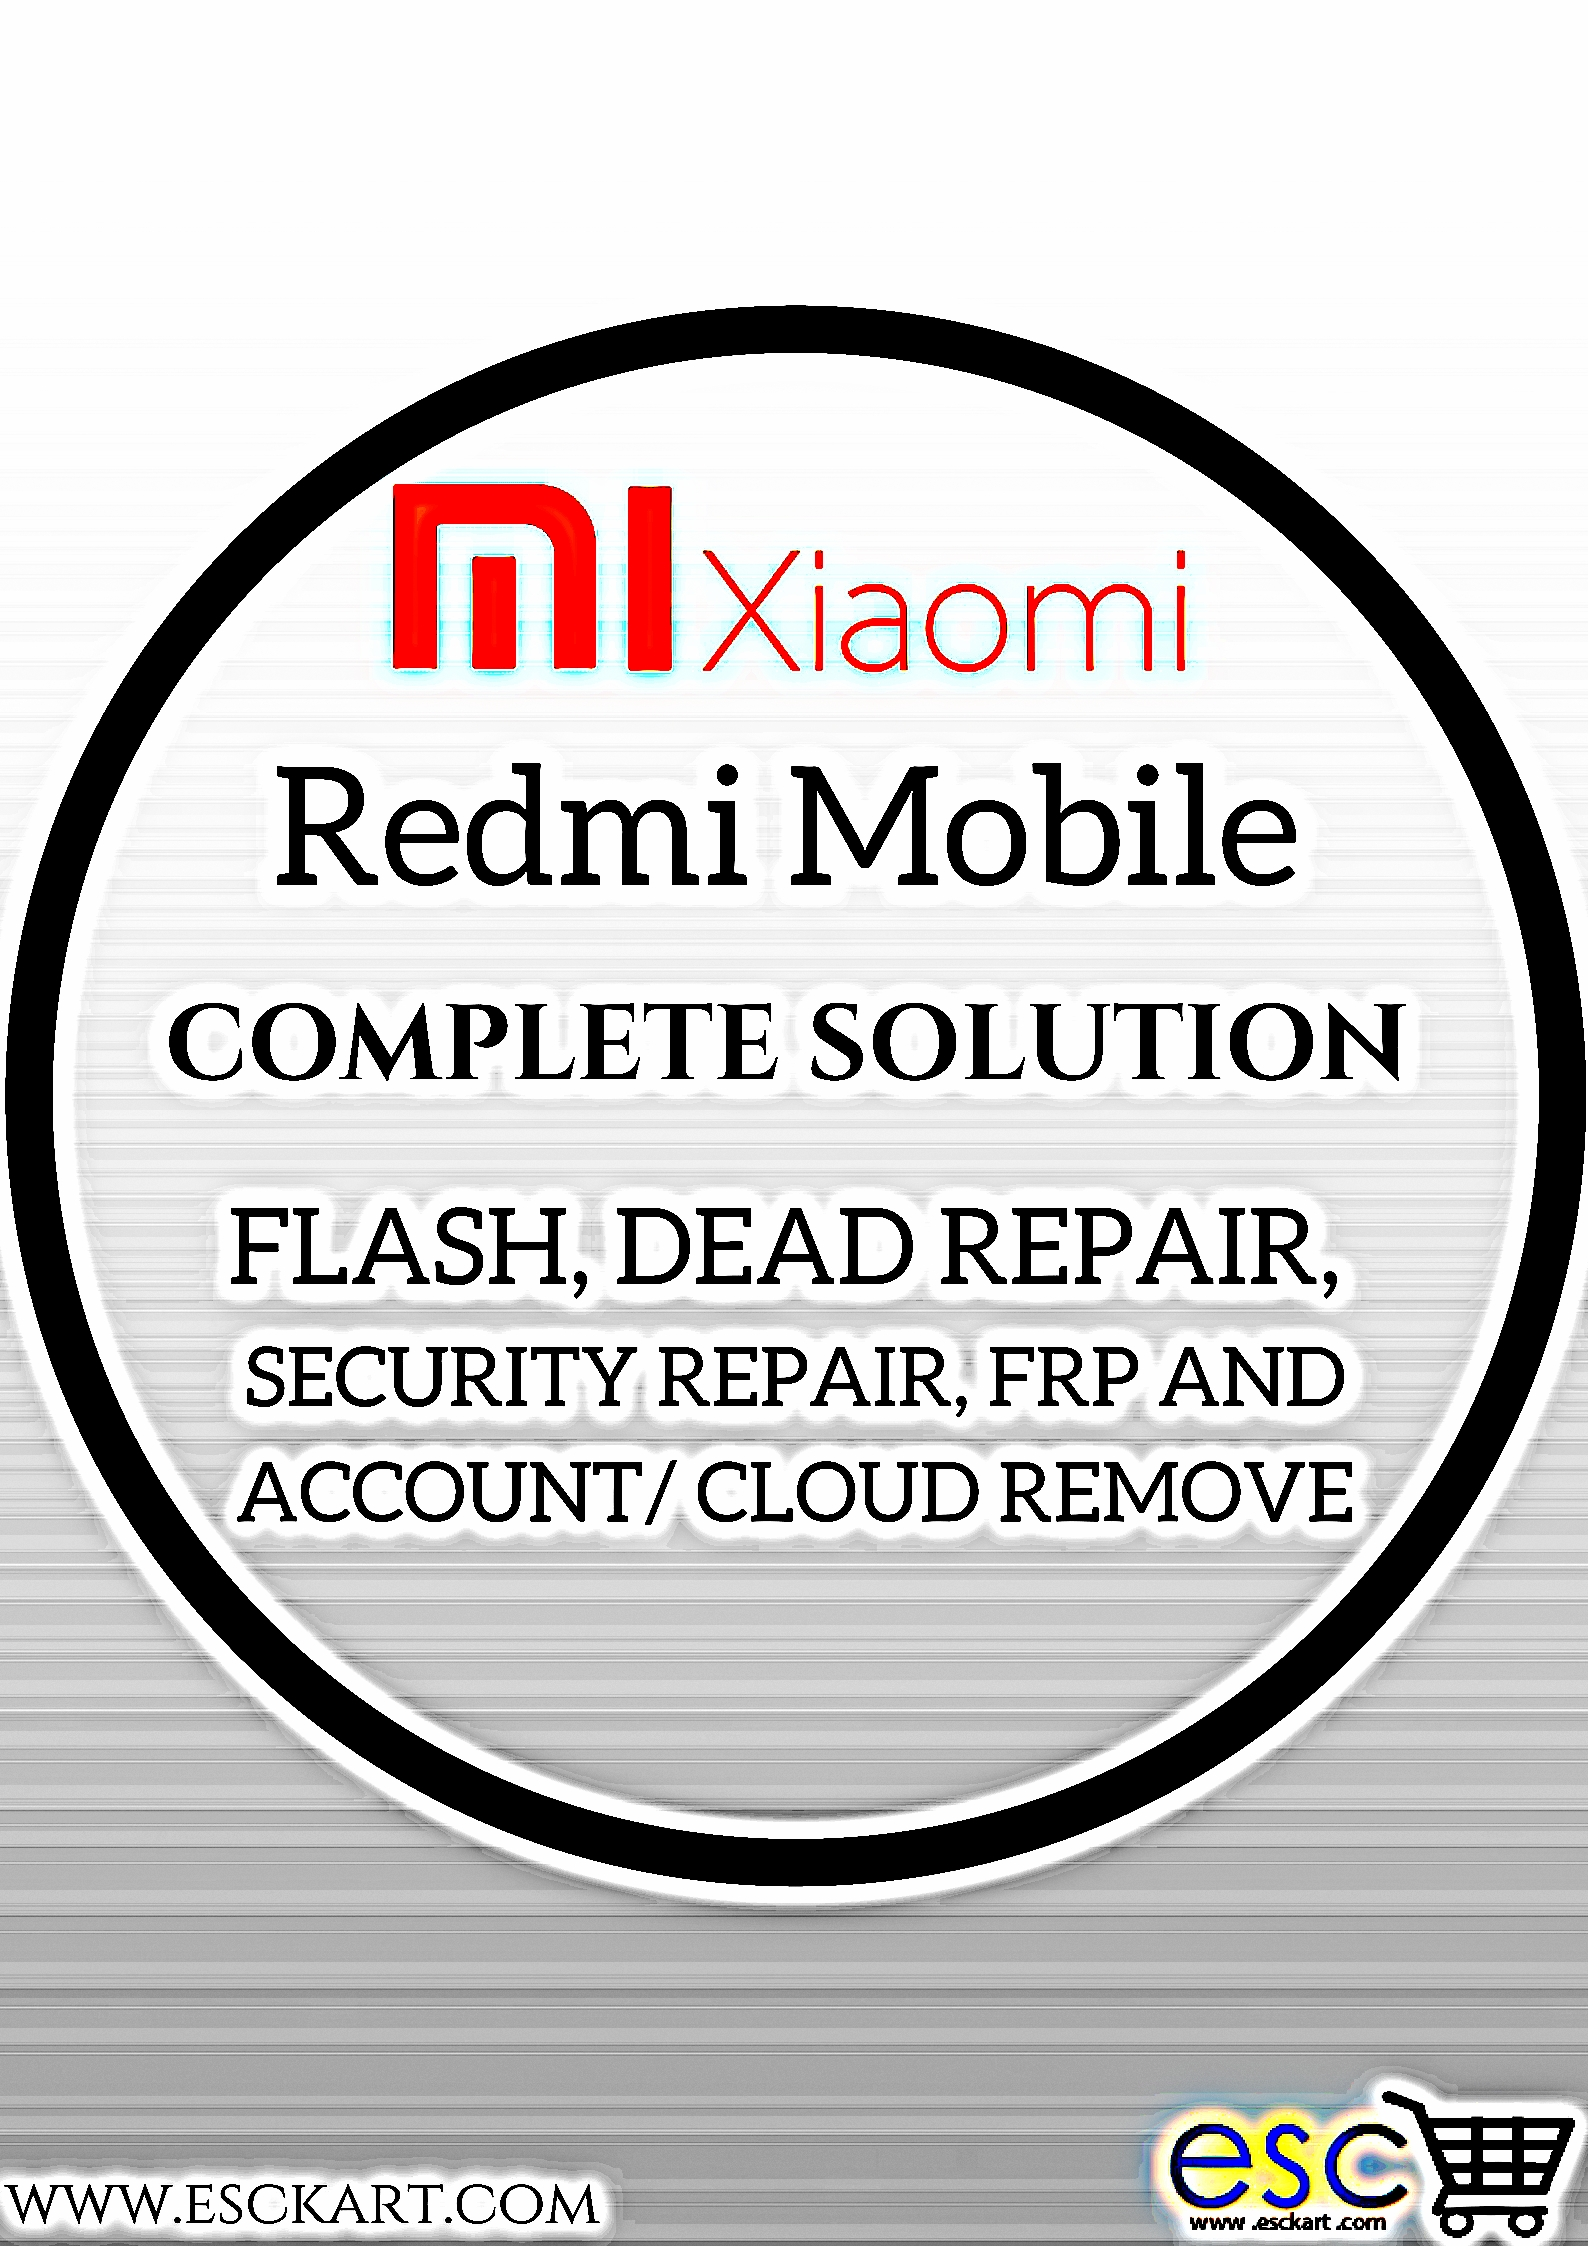 Esckart | Redmi Mi (Xiomi) Flash Files 37 models